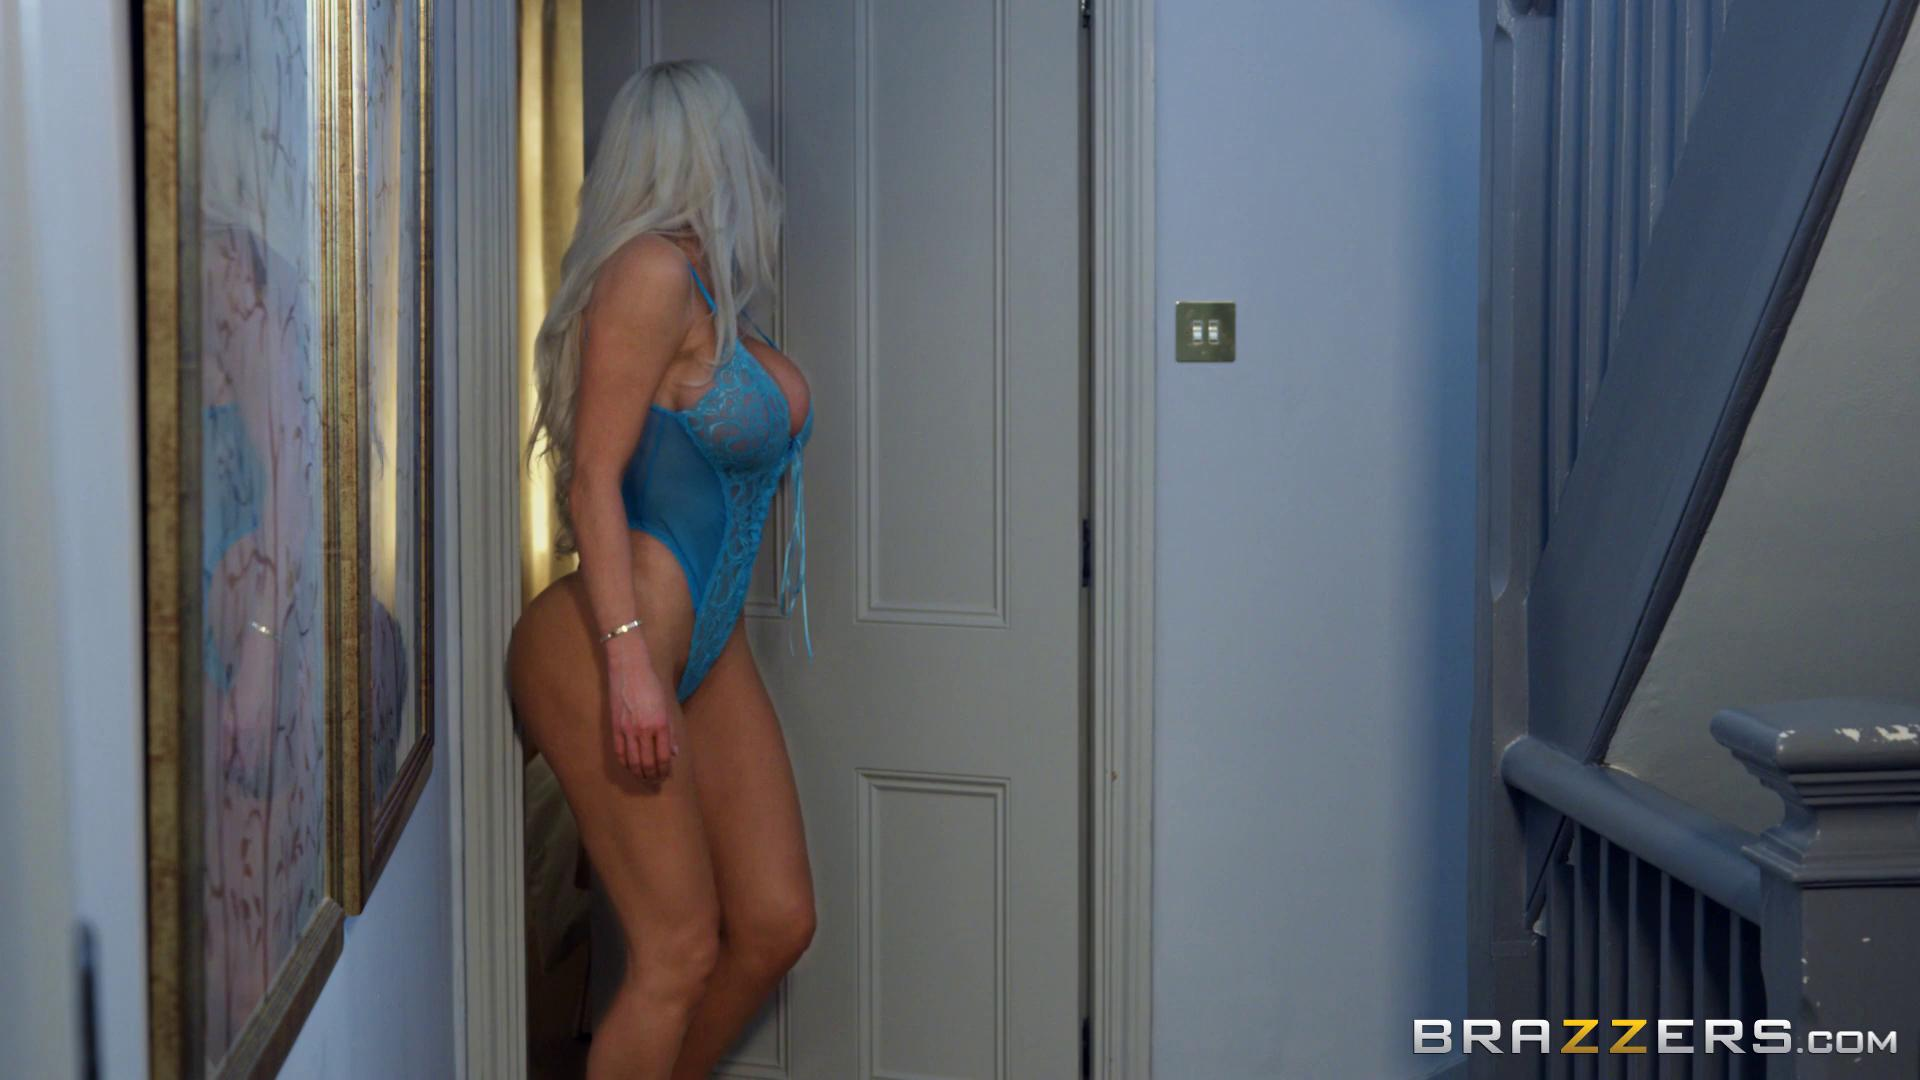 RealWifeStories – Nicolette Shea Not My Brothers Keeper